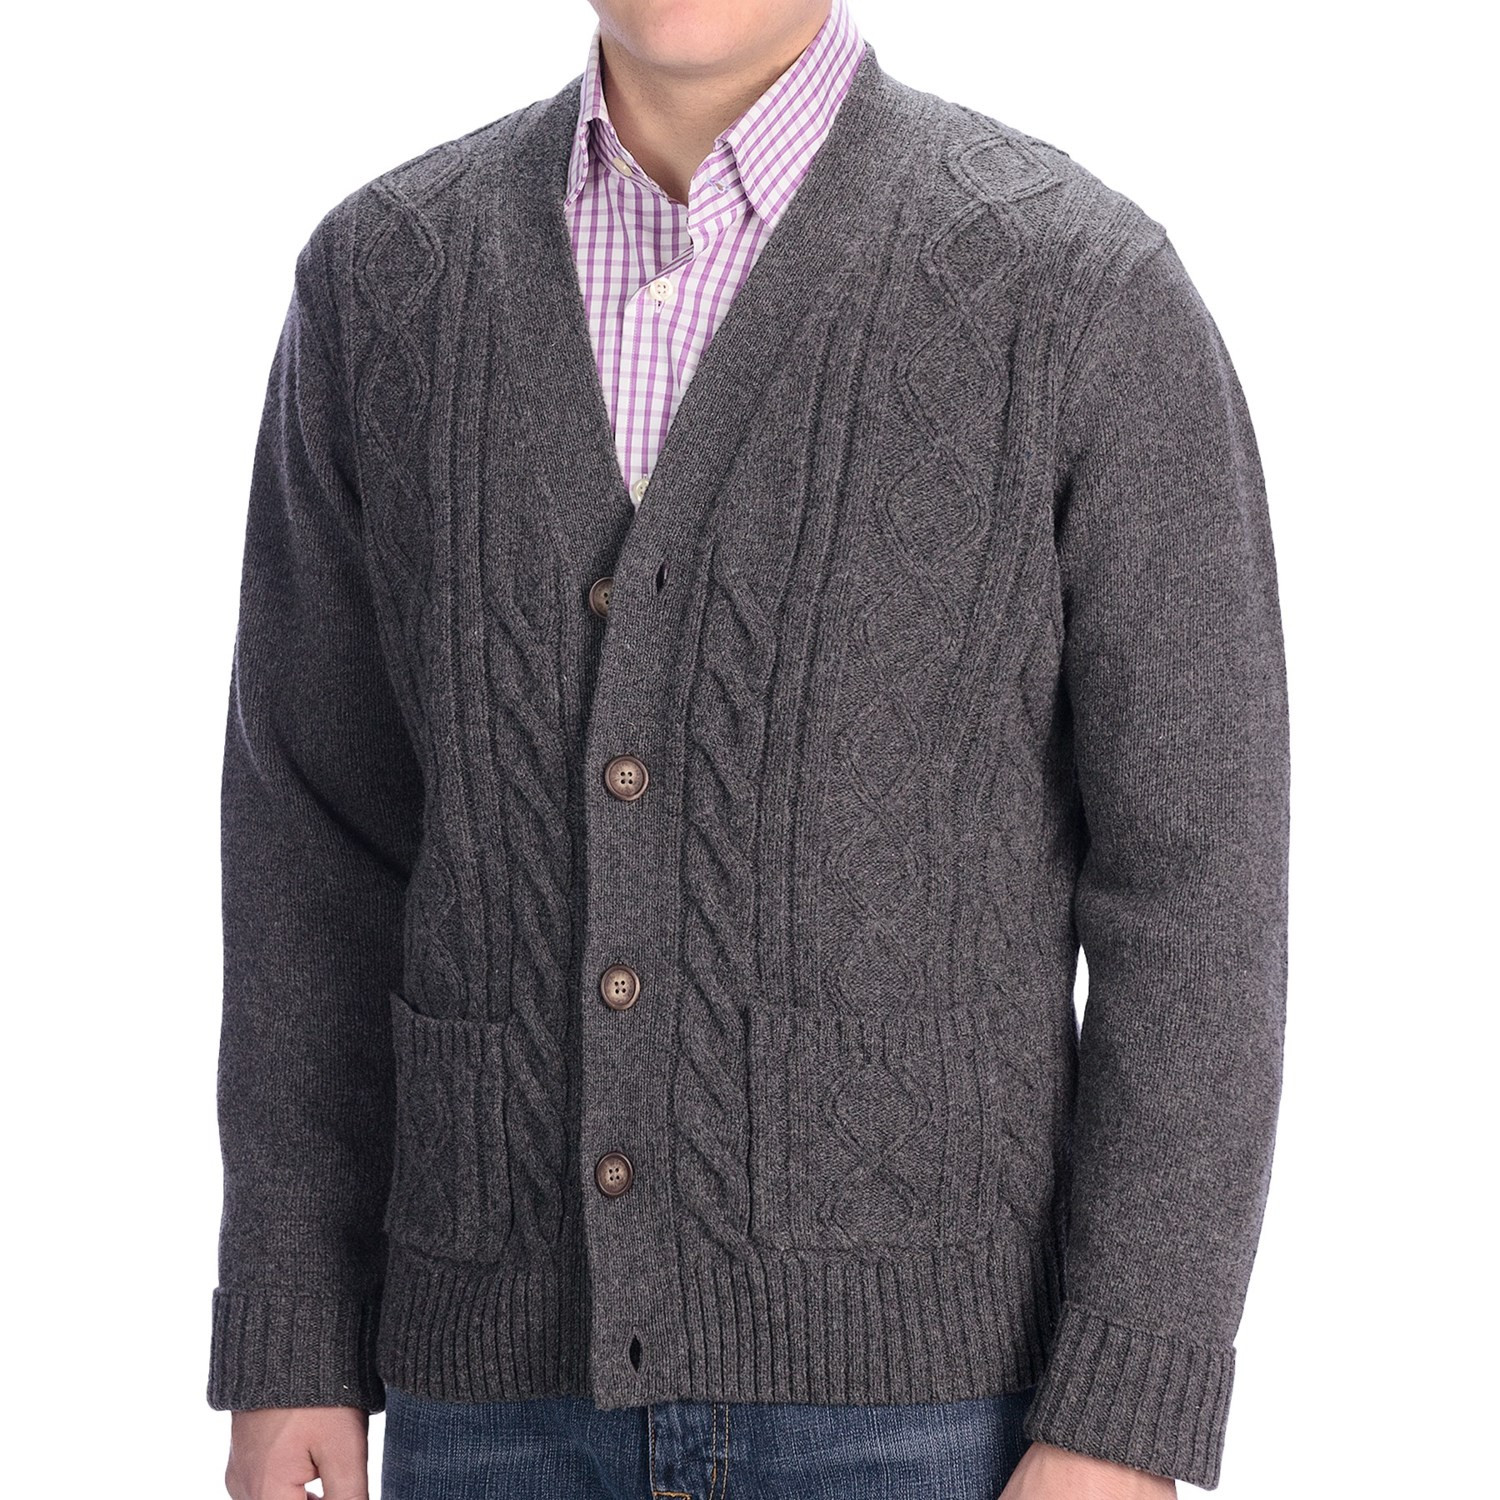 Mens Cable Knit Cardigan Unique Wool Cableknit Sweater Gray Cardigan Sweater Of New 45 Models Mens Cable Knit Cardigan